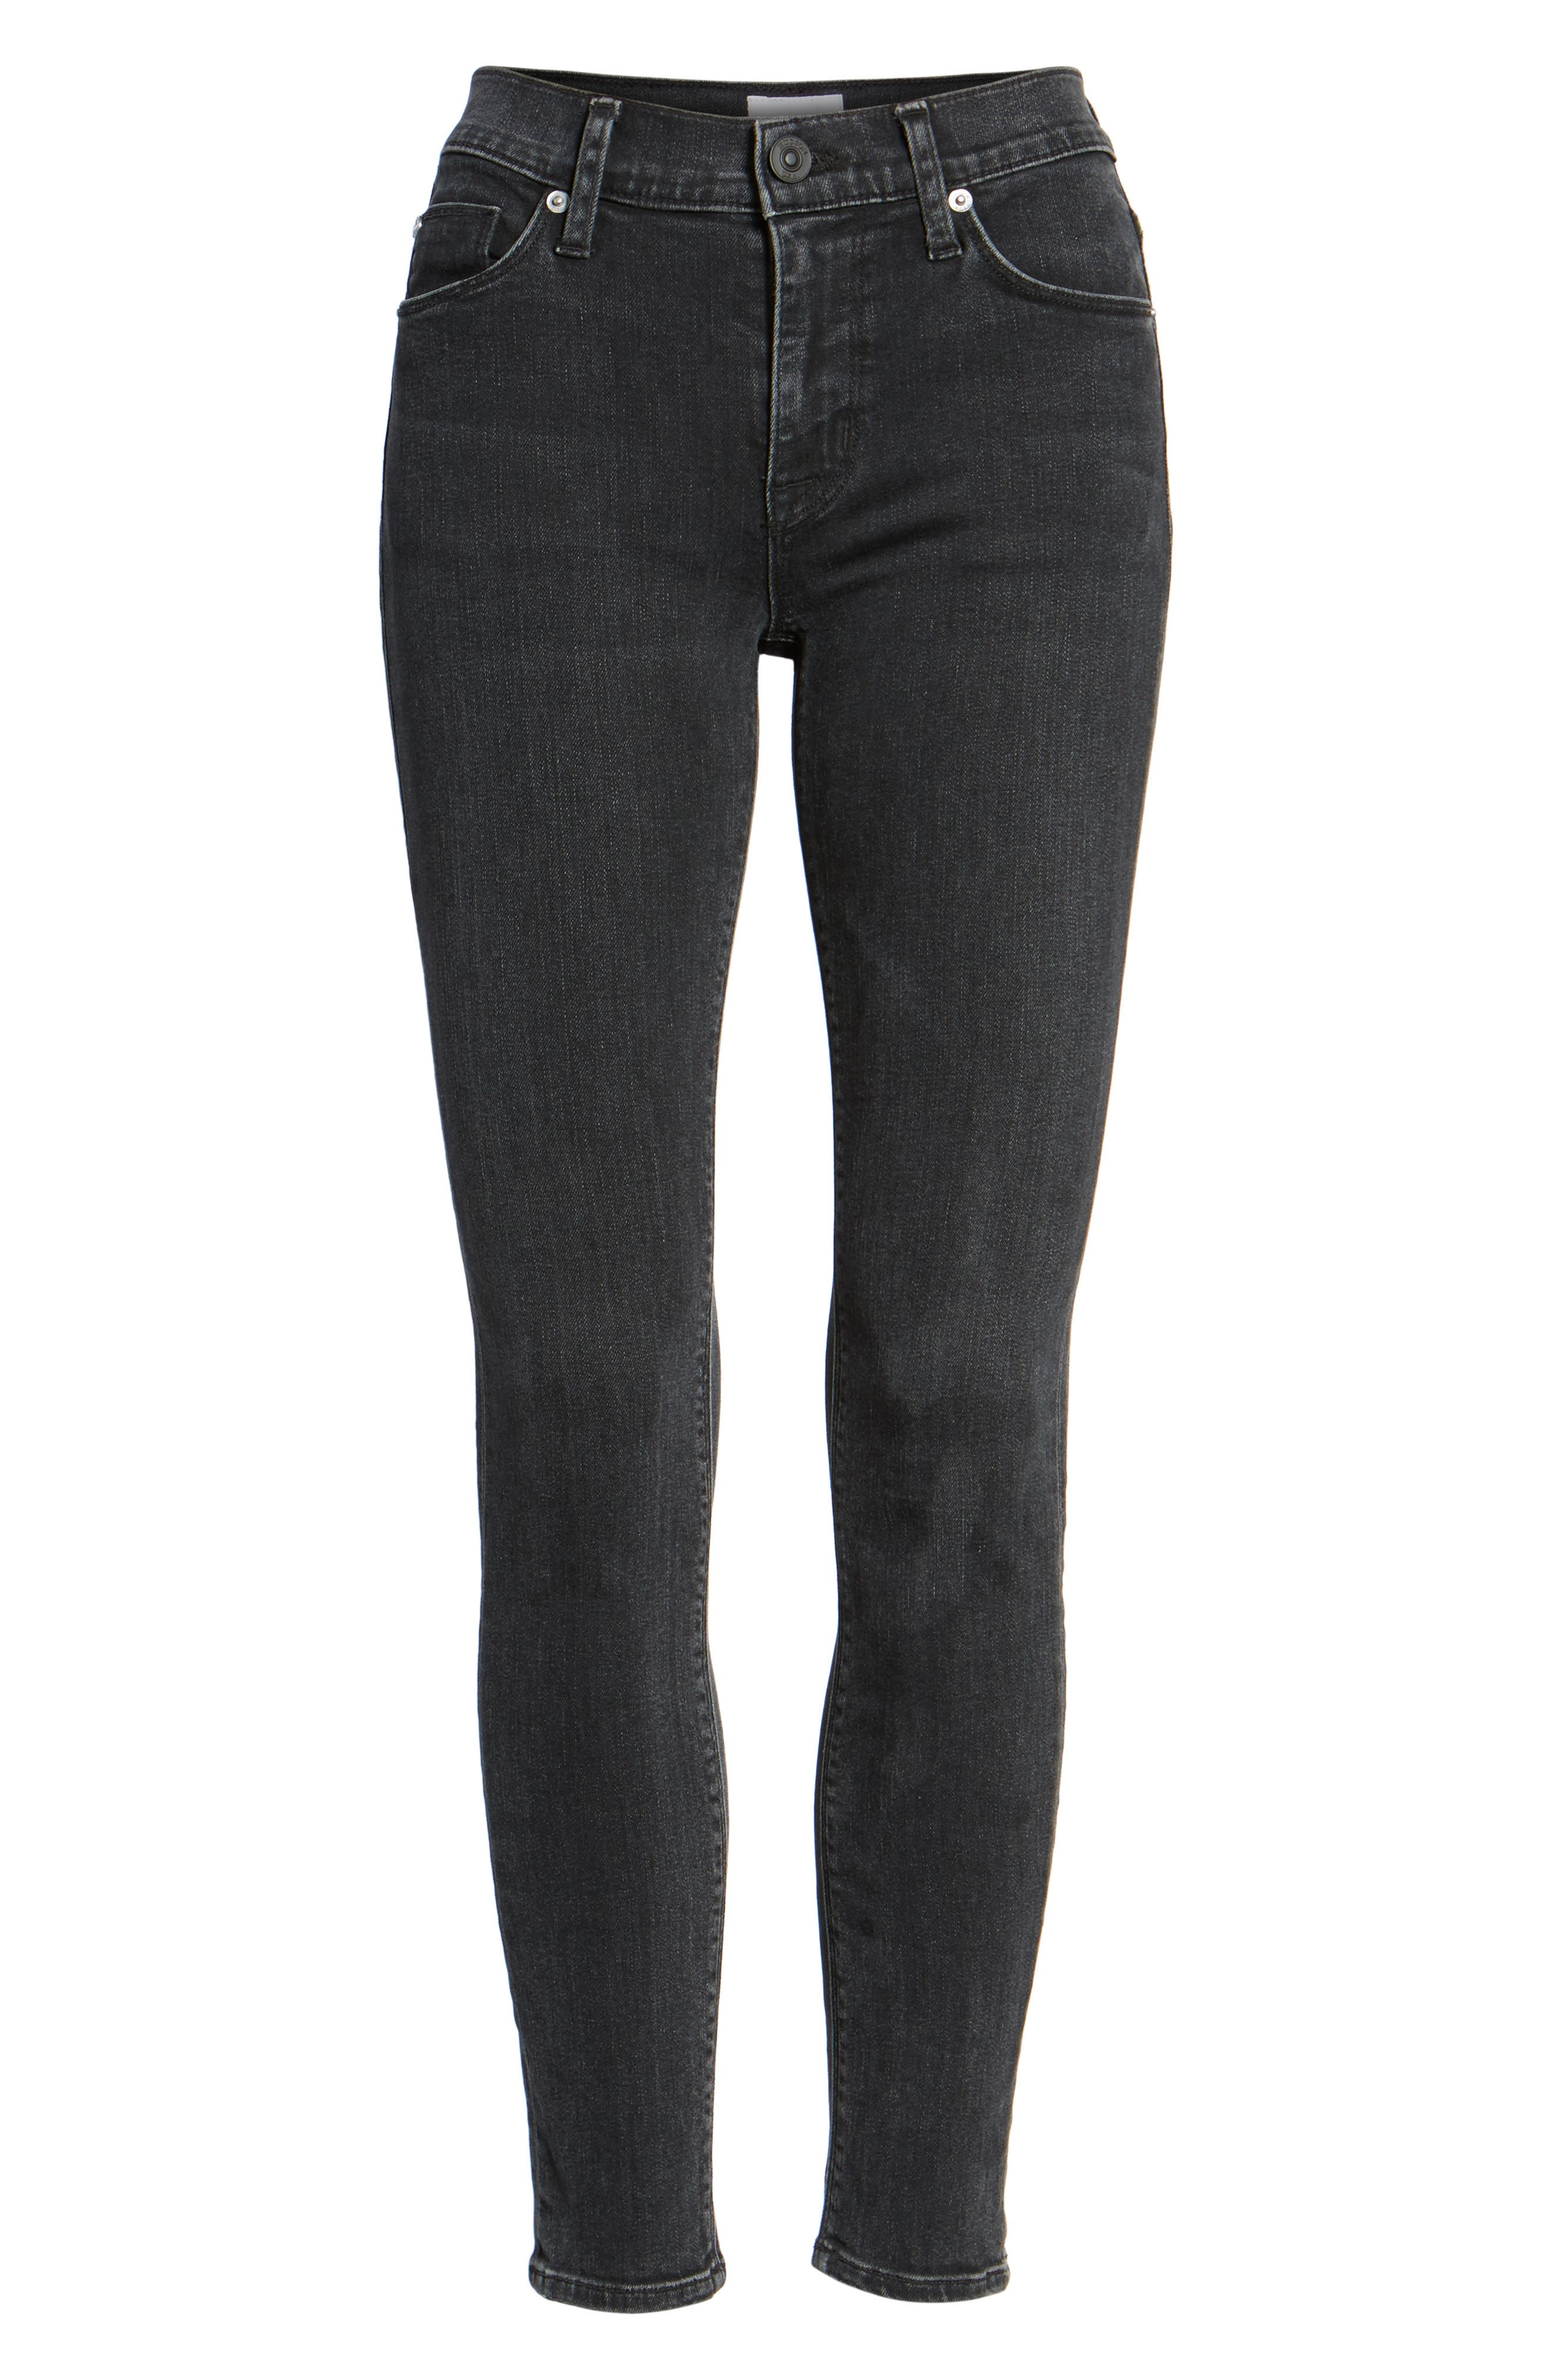 Nico Ankle Skinny Jeans,                             Alternate thumbnail 7, color,                             004